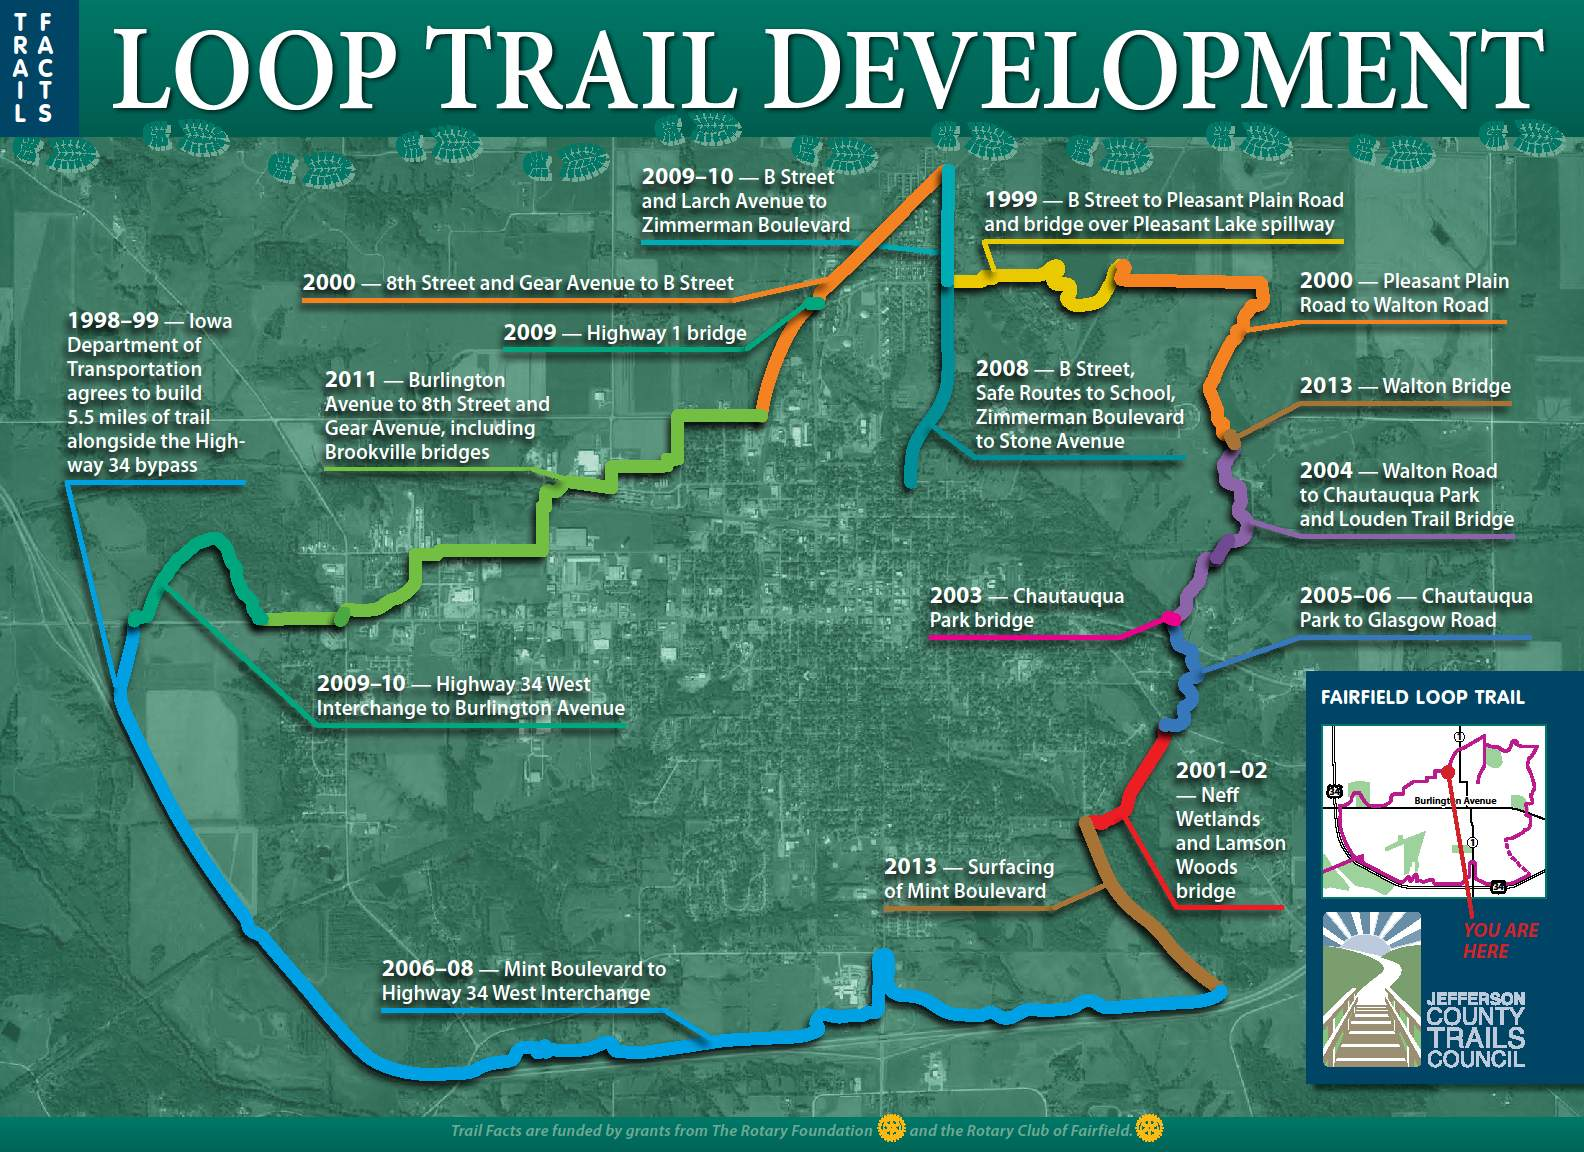 About JCTC/Trail Policies, Fairfield Loop Trail